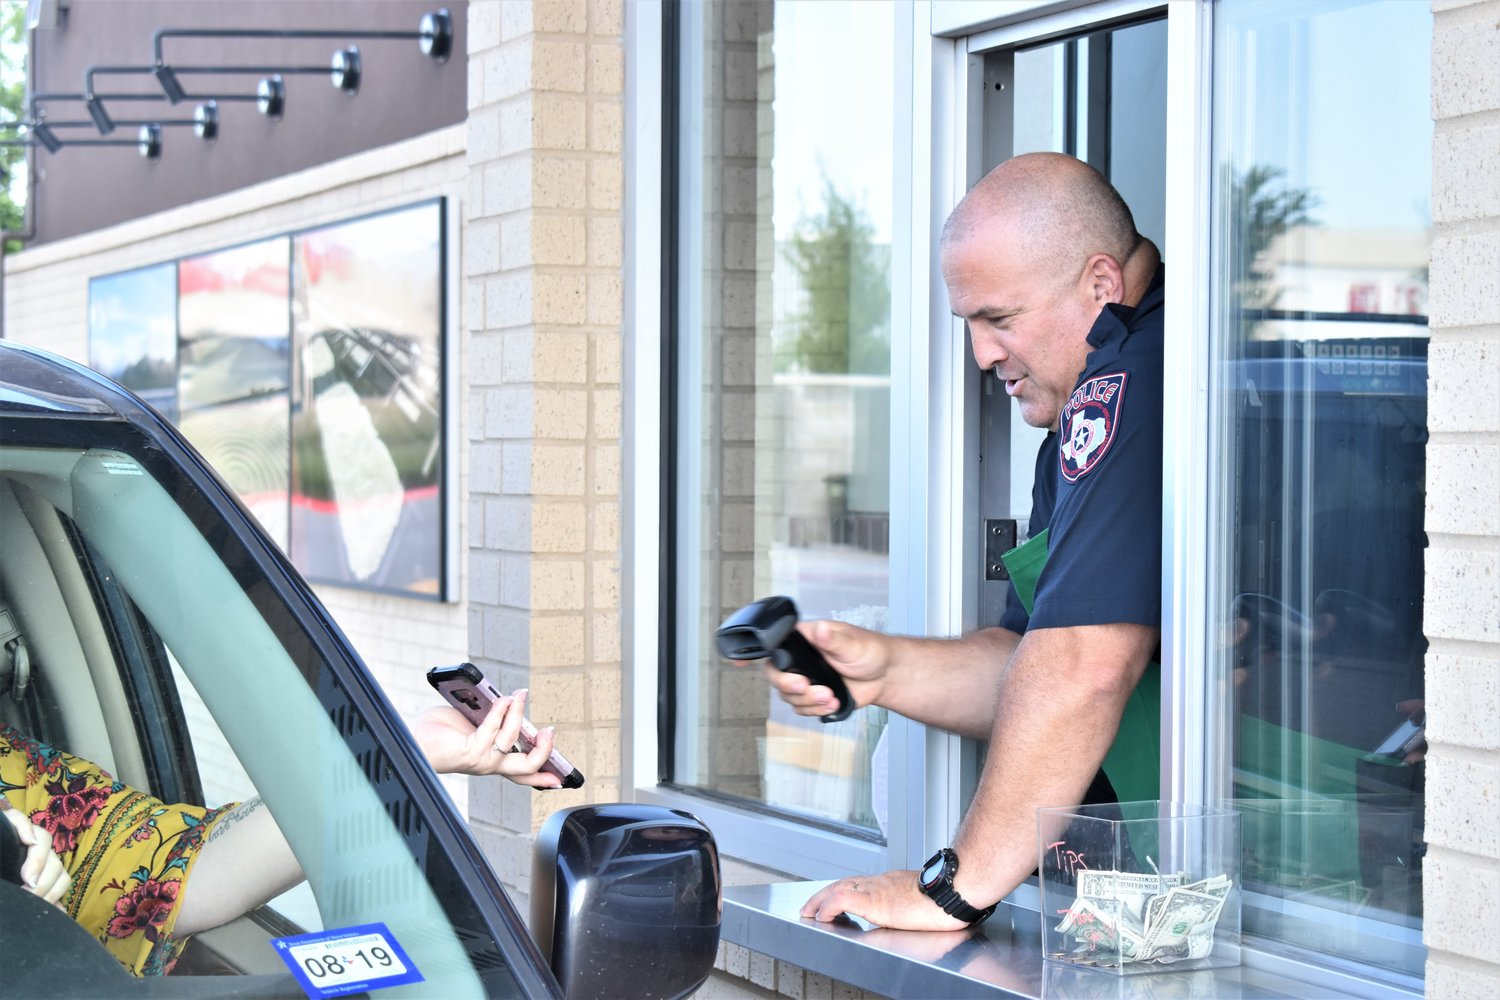 Officer Ray Killebrew scans a customer's phone during the Coffee With A Cop event on Monday. He was tasked with helping out in the Starbucks drive-thru along with another officer.